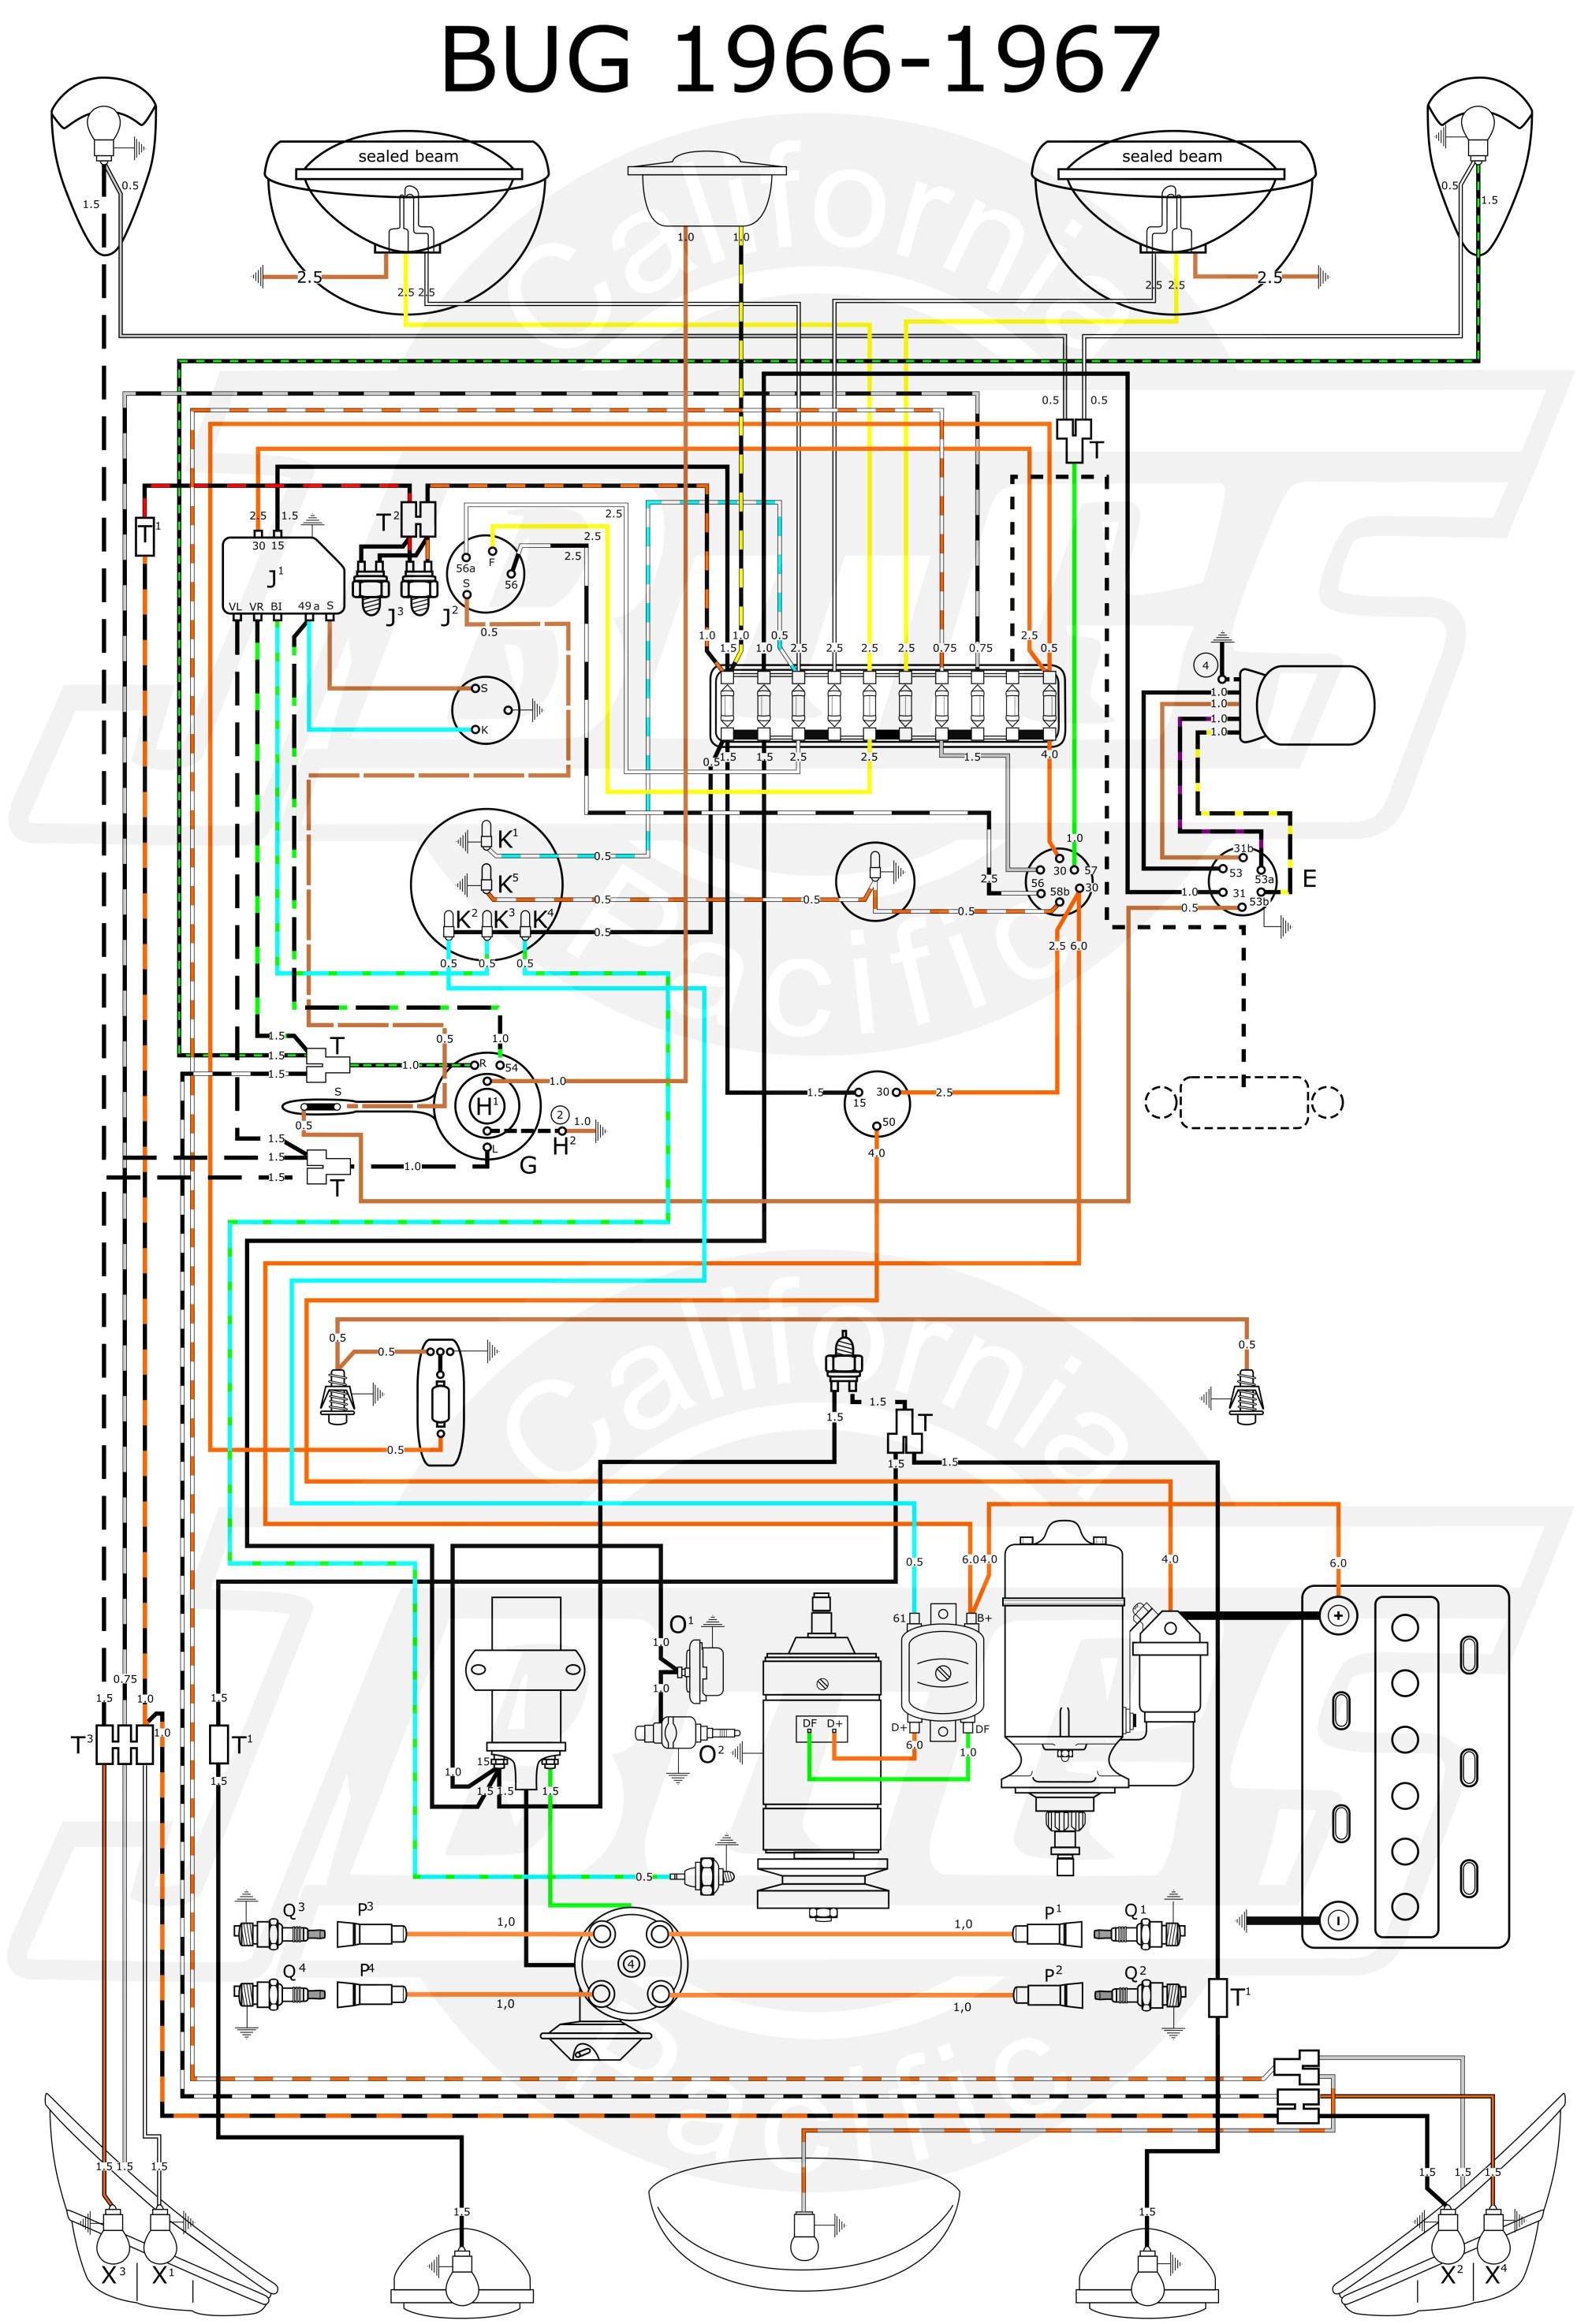 hight resolution of vw tech article 1966 67 wiring diagram volkswagen new beetle wiring schematics